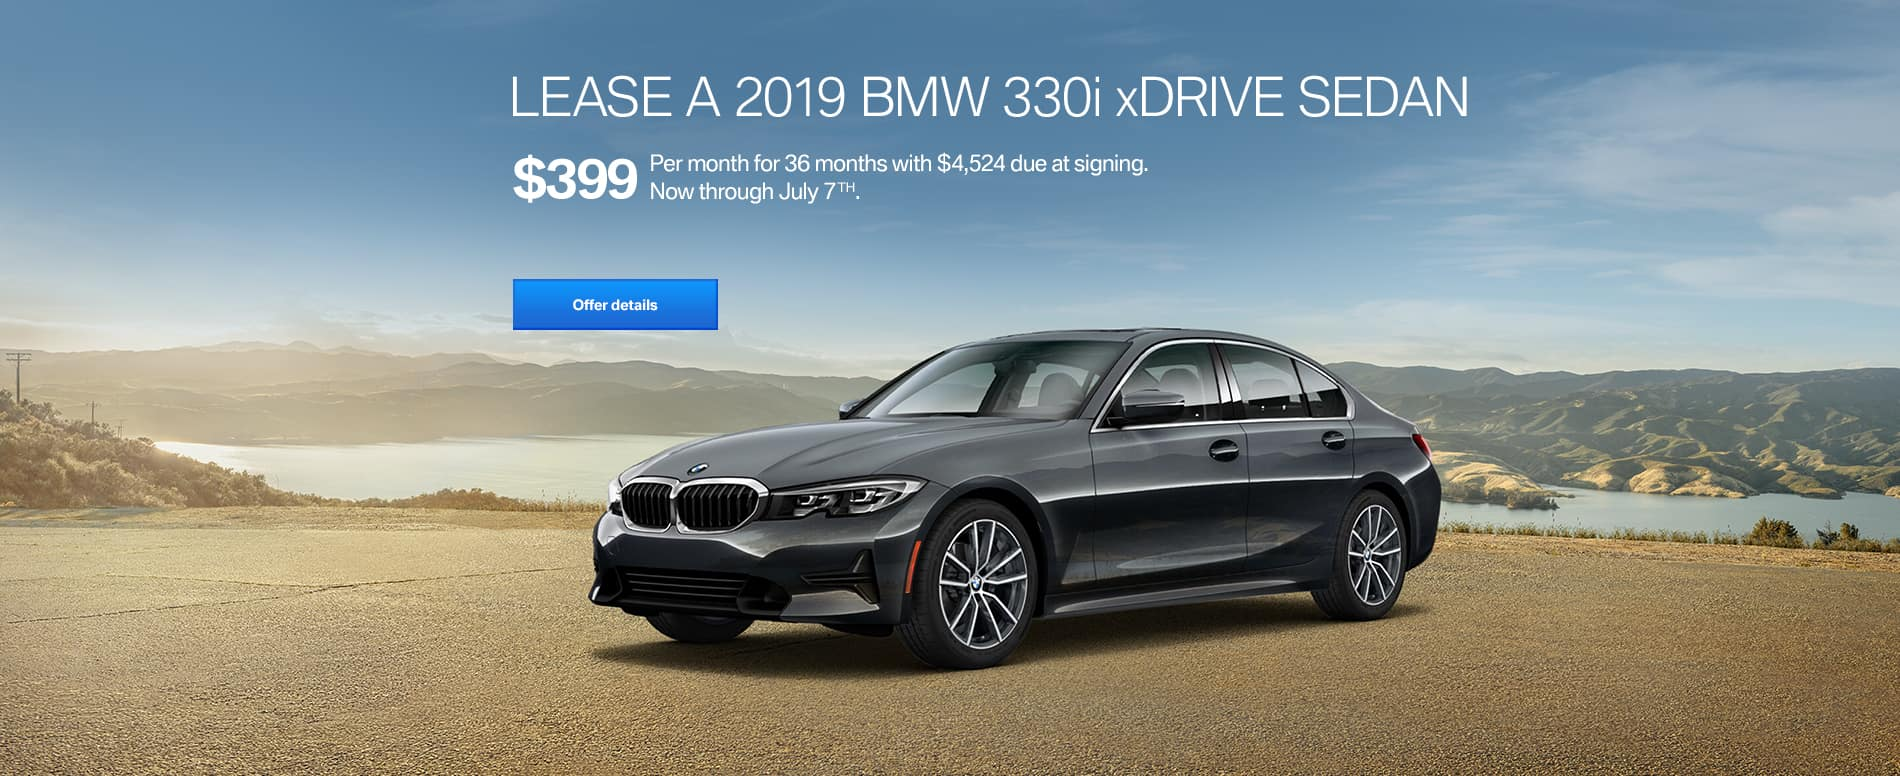 2019 bmw 330i xdrive summer